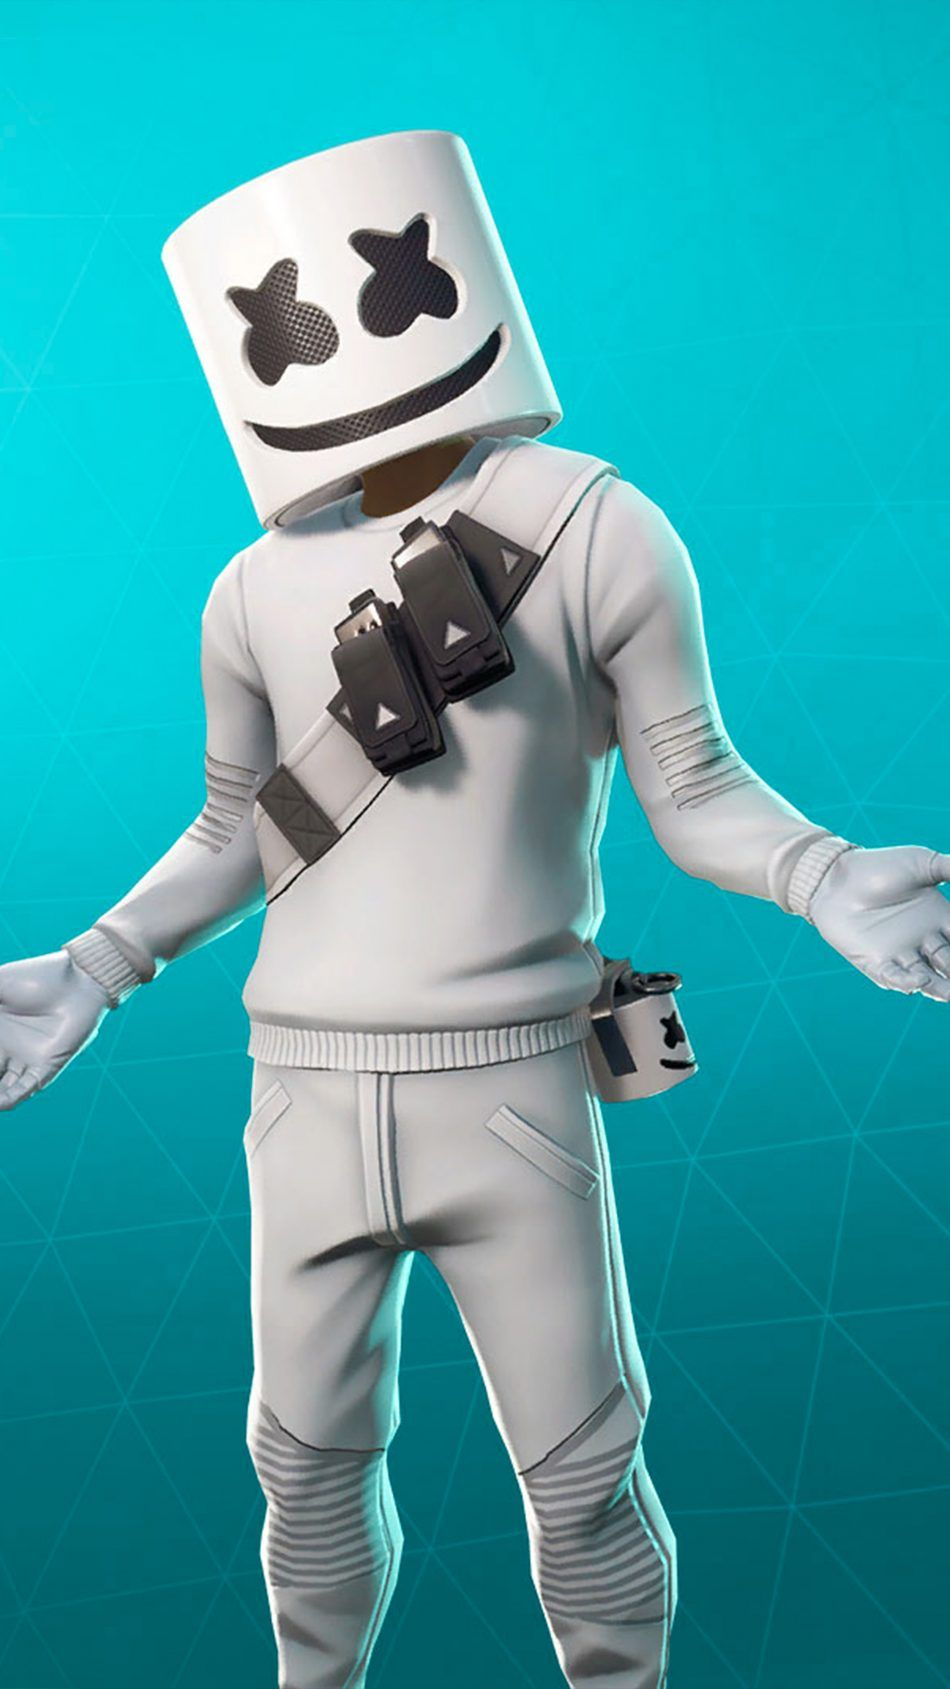 Fortnite Marshmello Wallpapers Top Free Fortnite Marshmello Backgrounds Wallpaperaccess